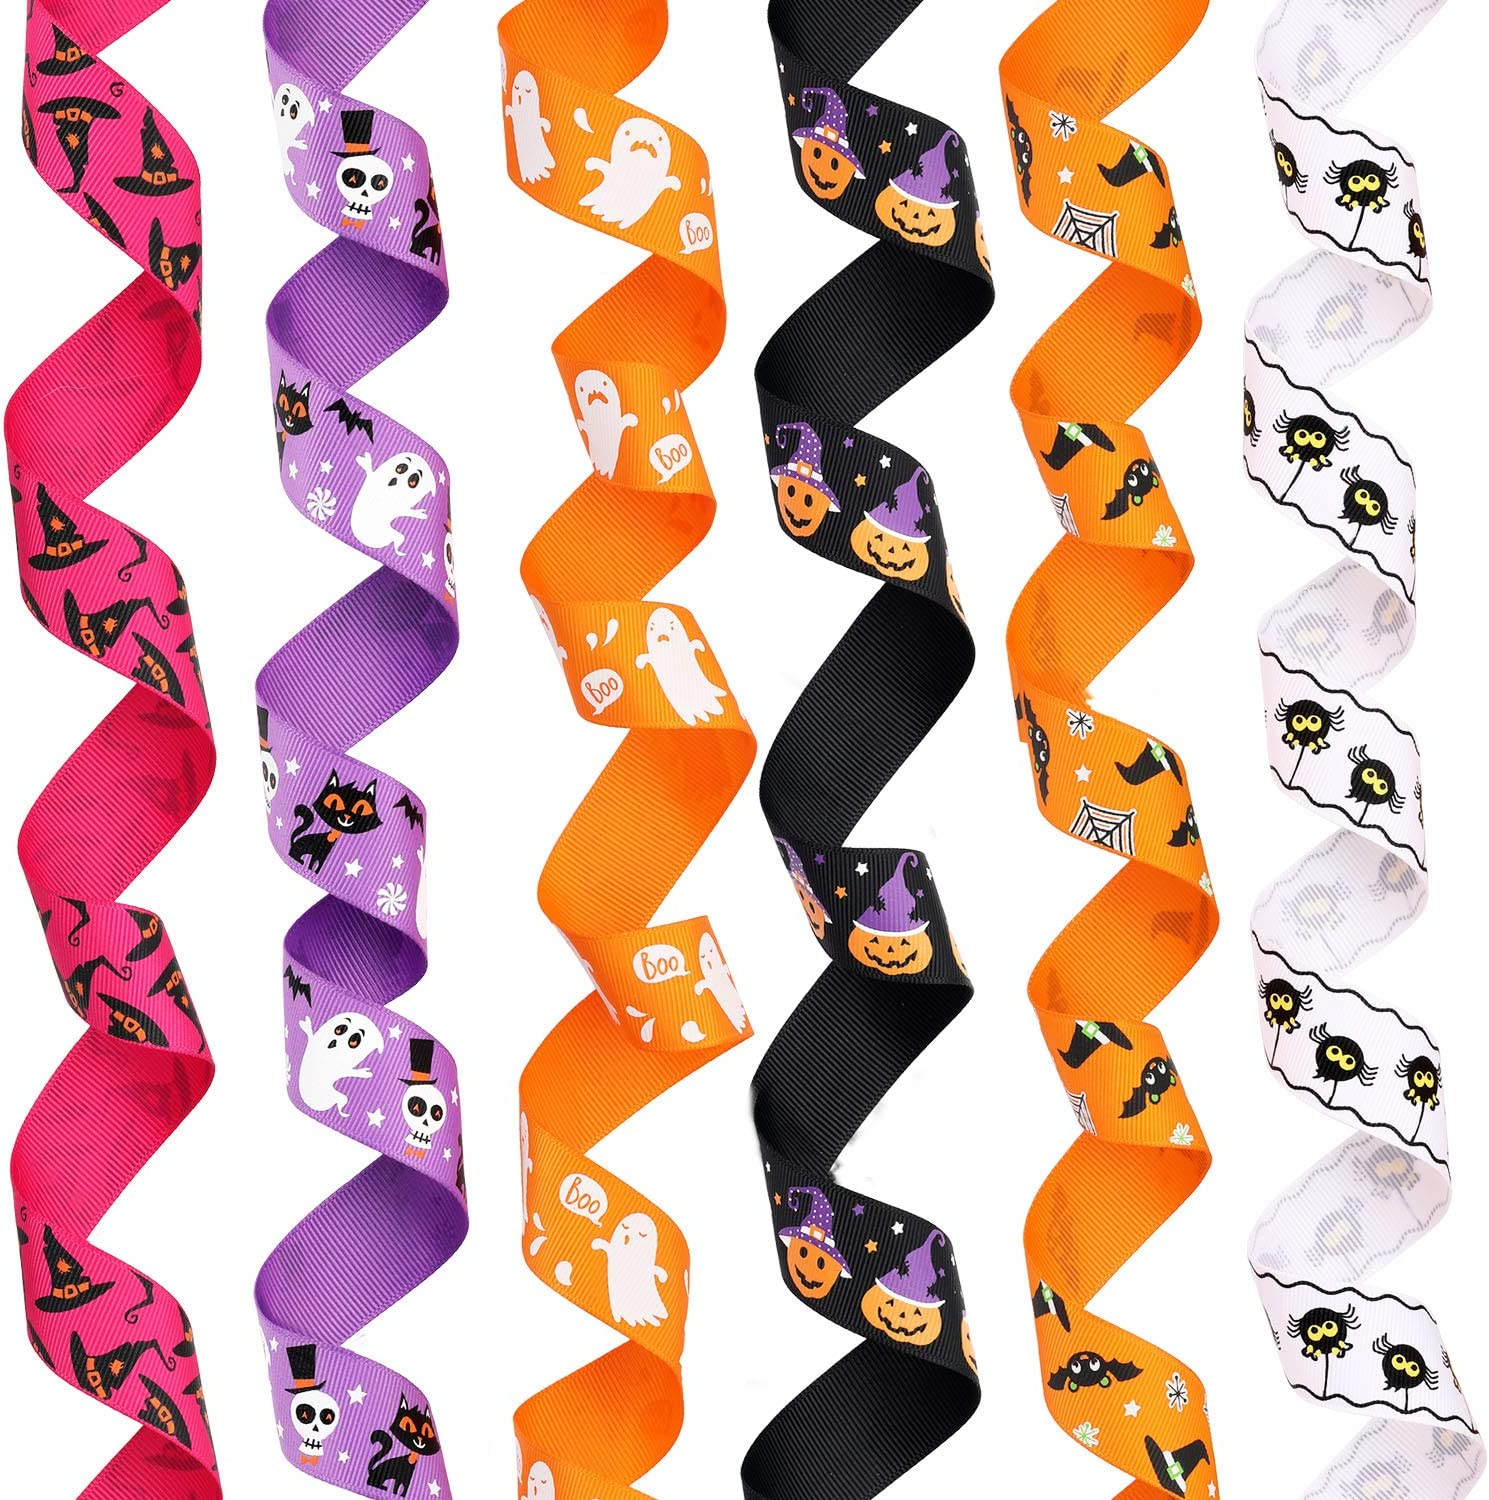 20 Yards 1 Inch Wide Halloween Ribbon Ghost Spider Pumpkin Witch Hat Print Grosgrain Ribbon Halloween Decorative Ribbon for Halloween Party Supplies